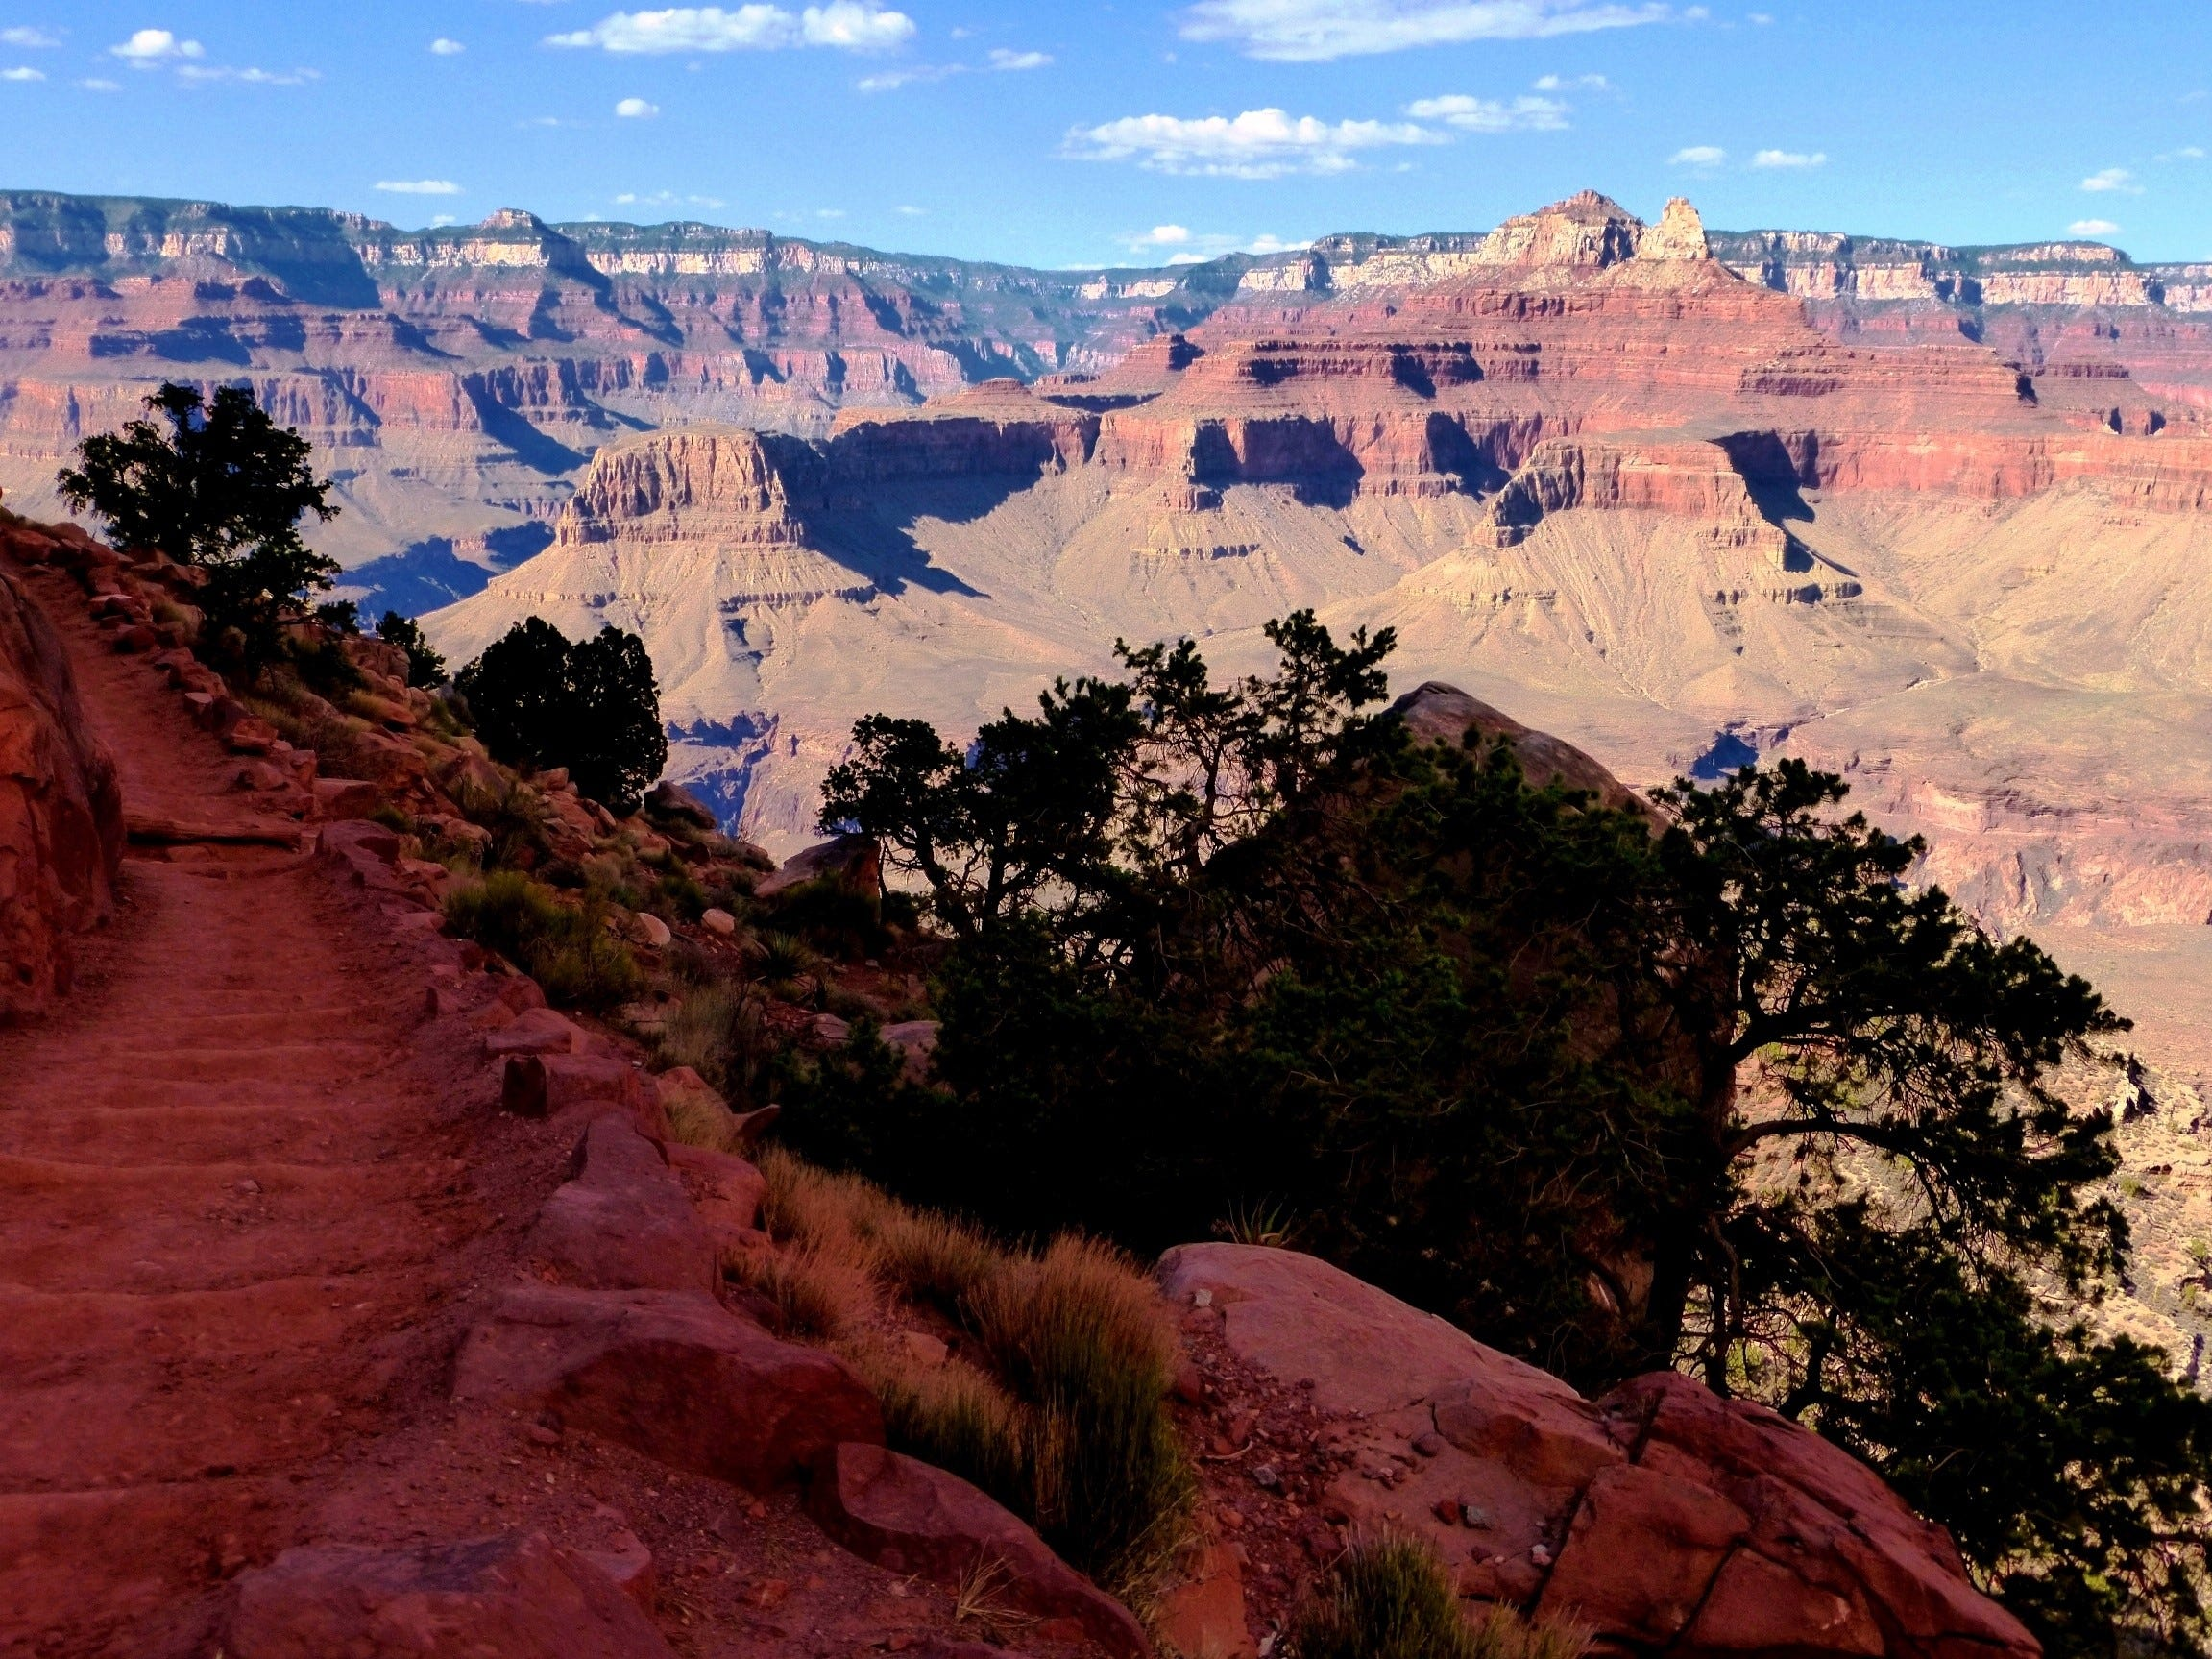 The Arizona Trail stretches from Mexico to Utah and highlights the diversity of the state including the Grand Canyon.